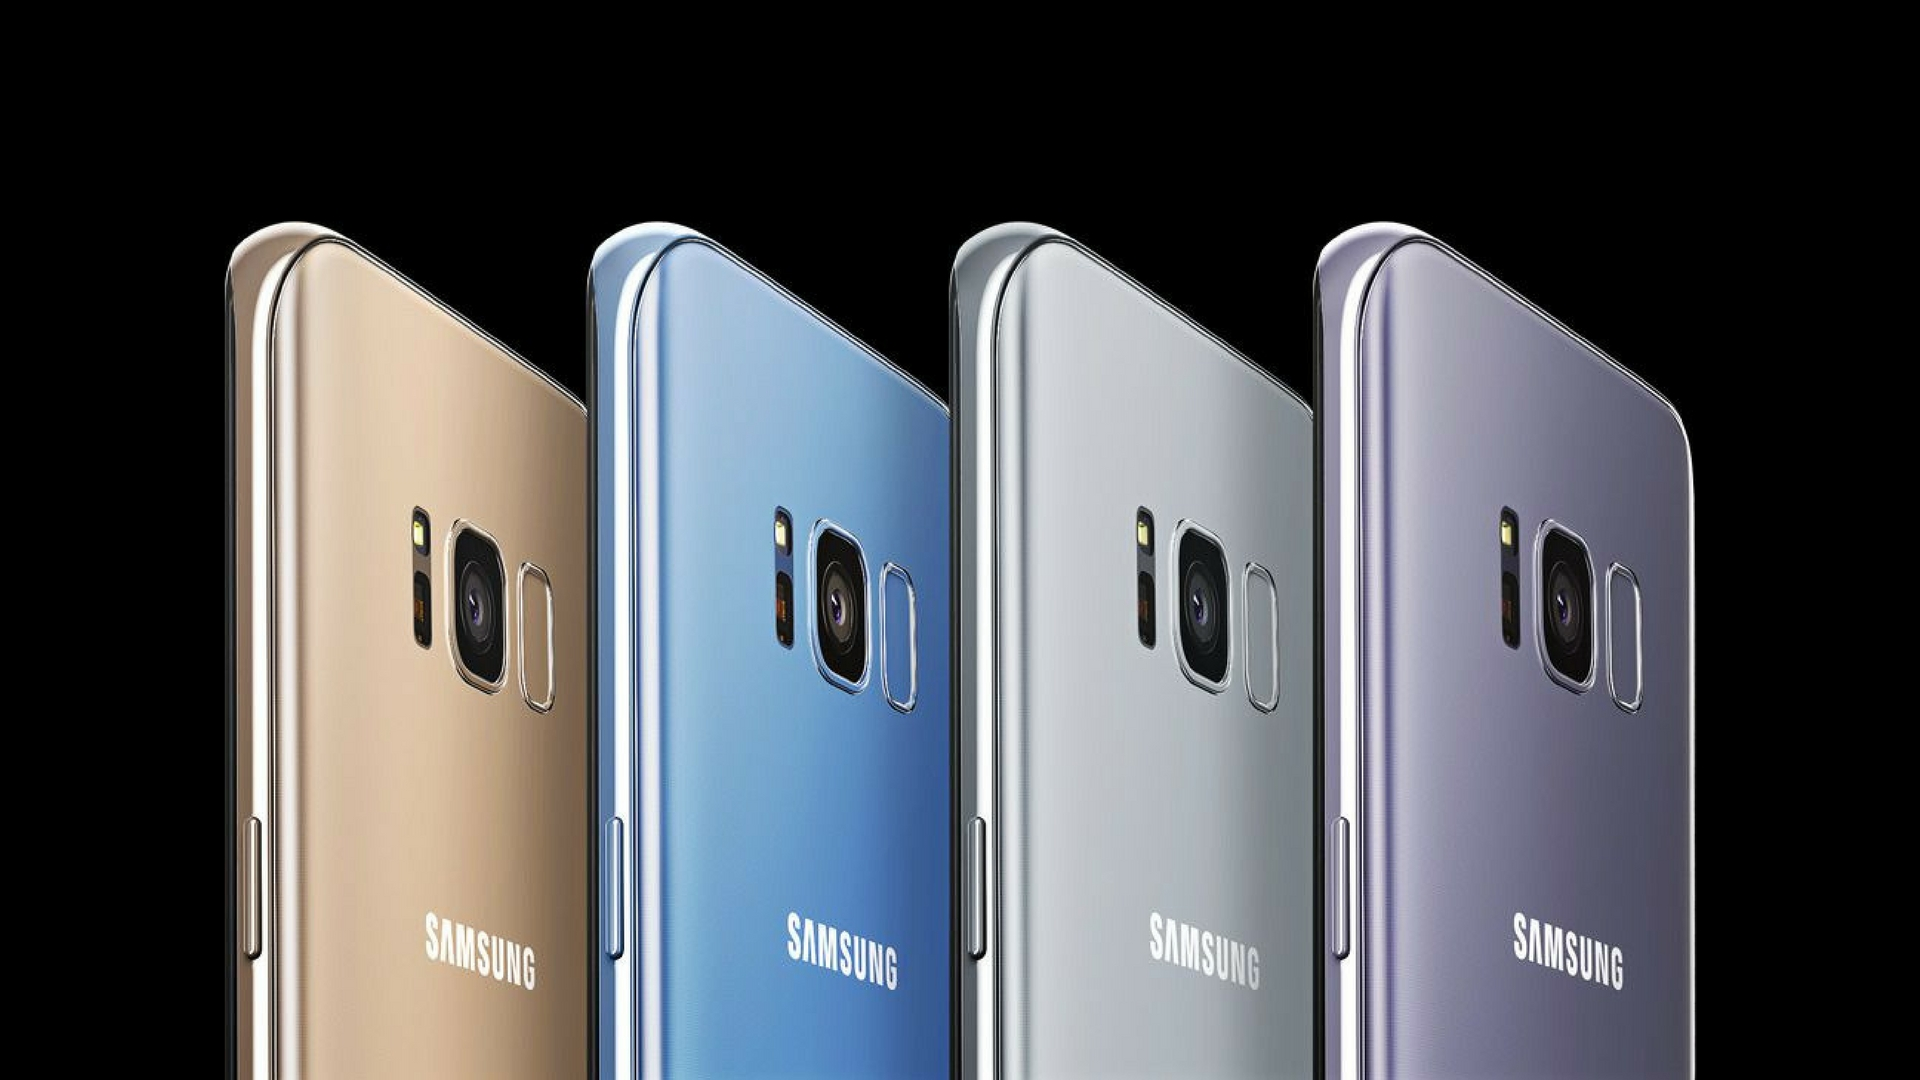 samsung-galaxy-s8-s8-plus-colors-smartphone